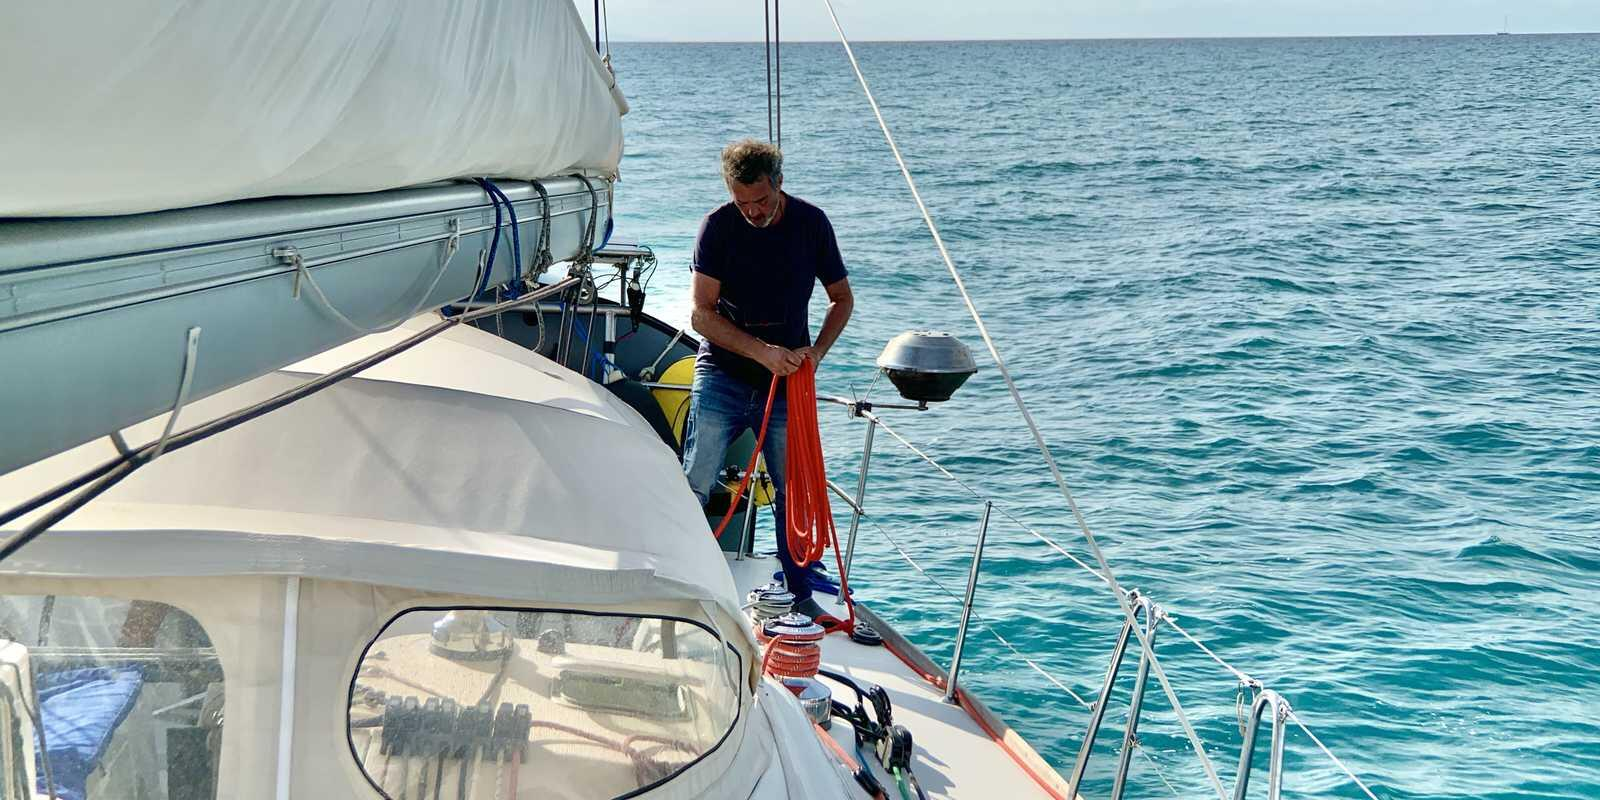 Magical week in a small group on an exceptional 47-foot sailboat